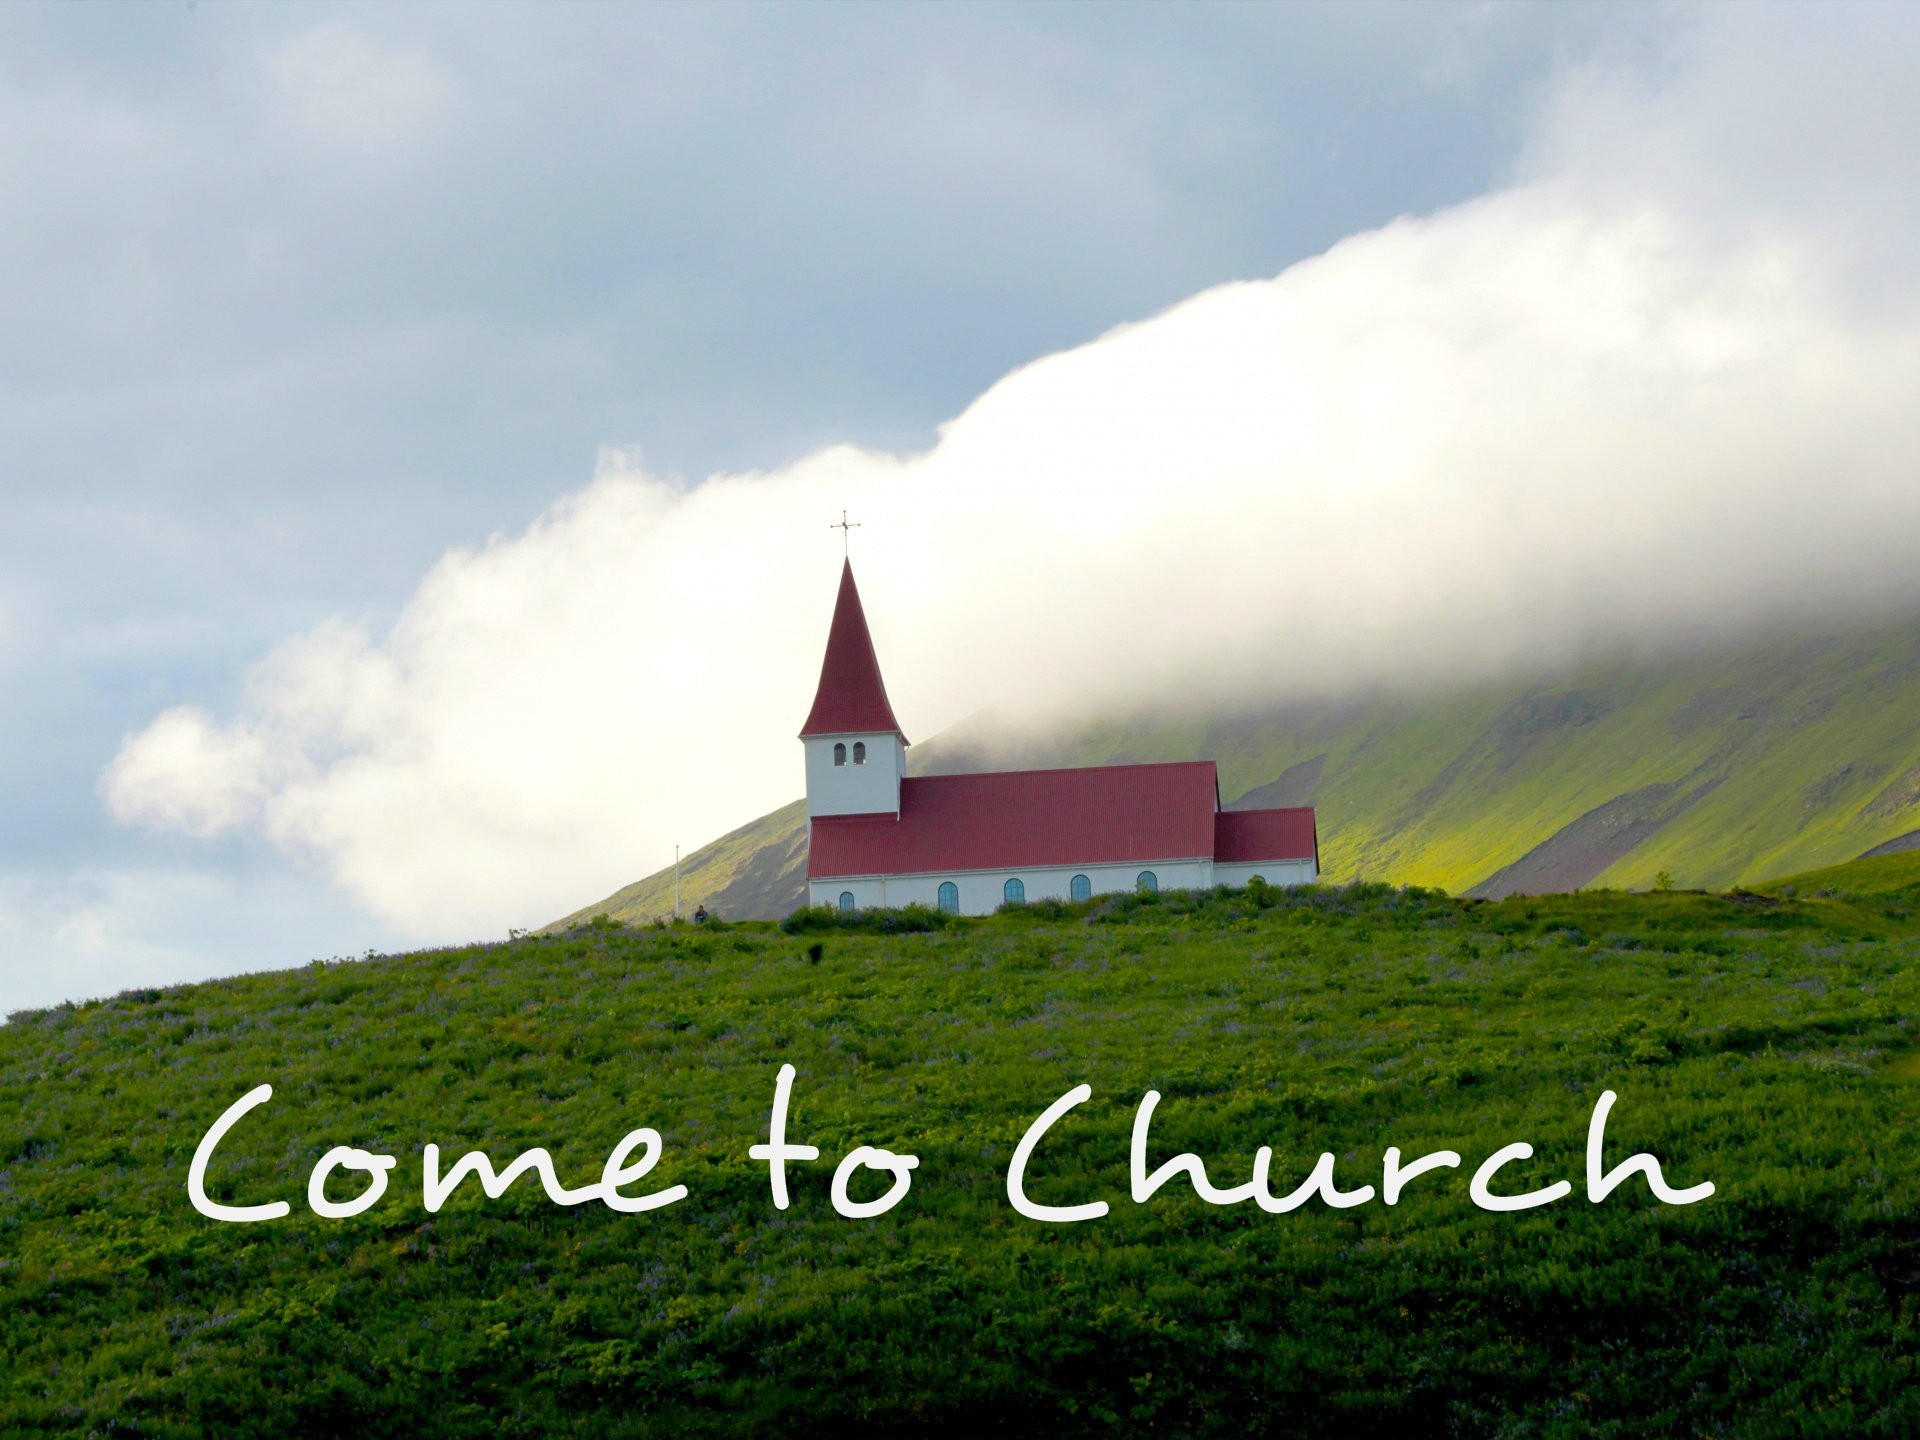 Personal Invitations To Church May Not Be Enough